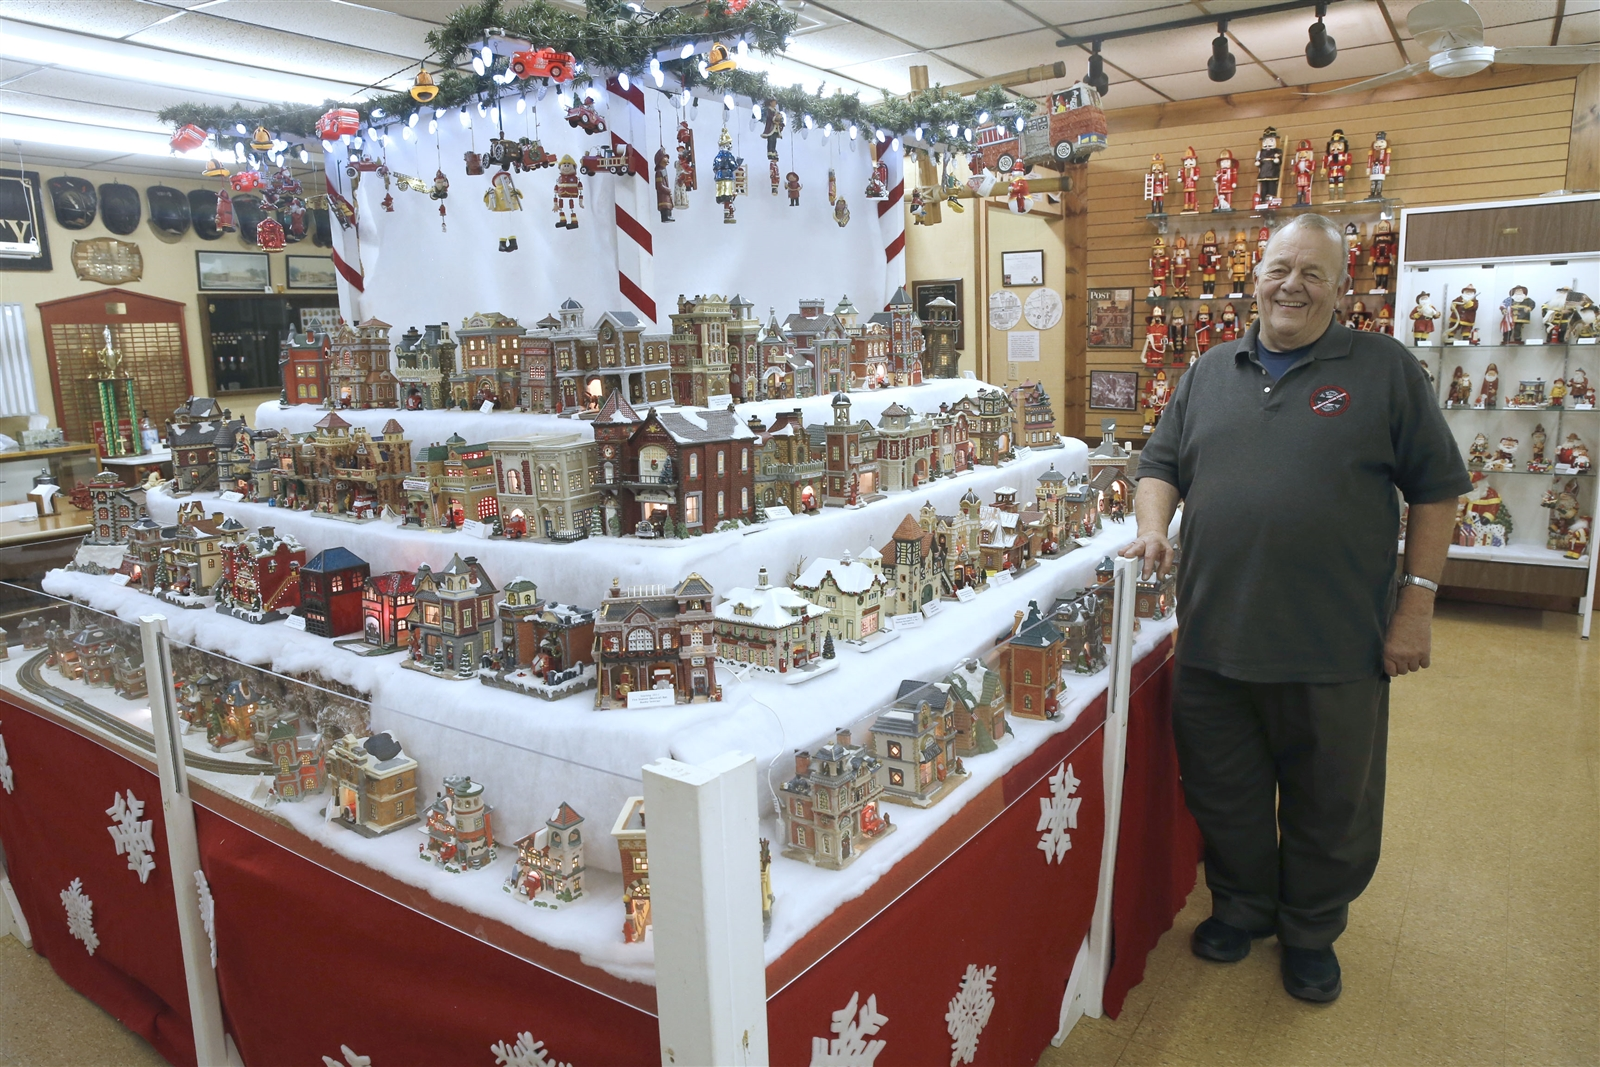 Pat Coghlan, president of the Buffalo Fire Historical Society, stands by vintage ceramic firehouses that are part of a holiday display at the museum. (Robert Kirkham/Buffalo News)